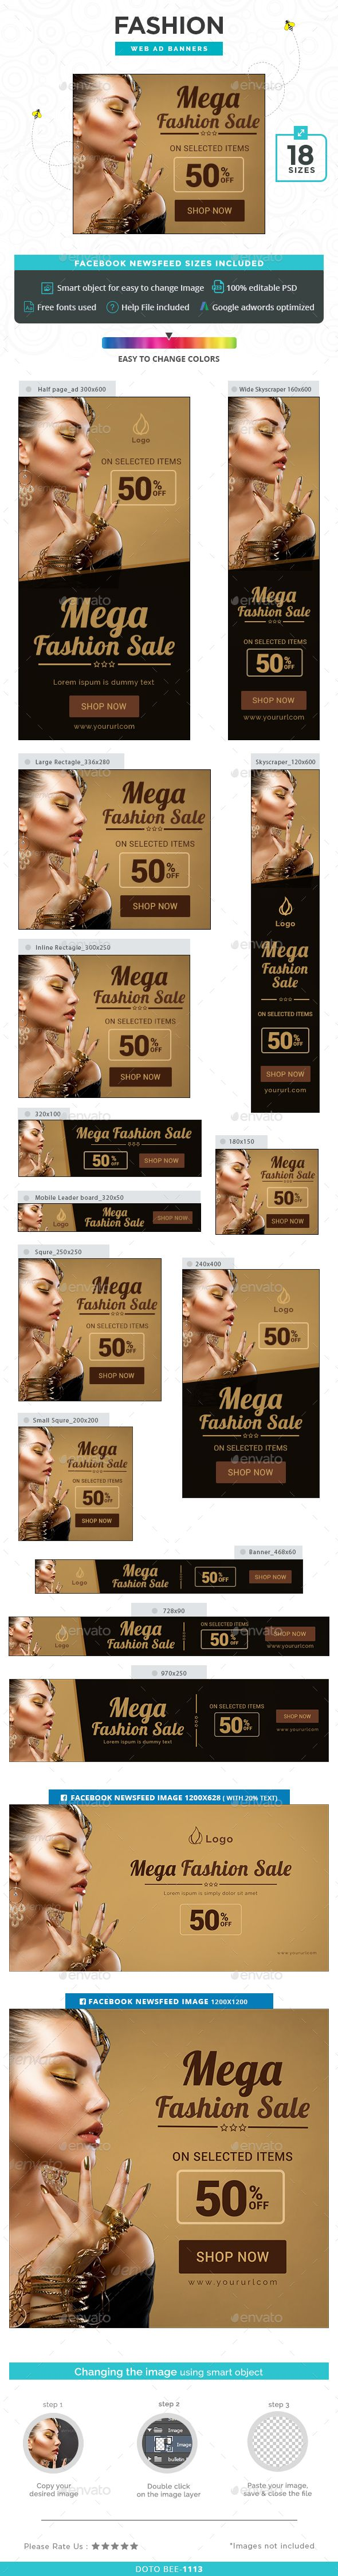 Fashion Sale Banners — Photoshop PSD #sale #banner set • Available here → https://graphicriver.net/item/fashion-sale-banners/14637699?ref=pxcr